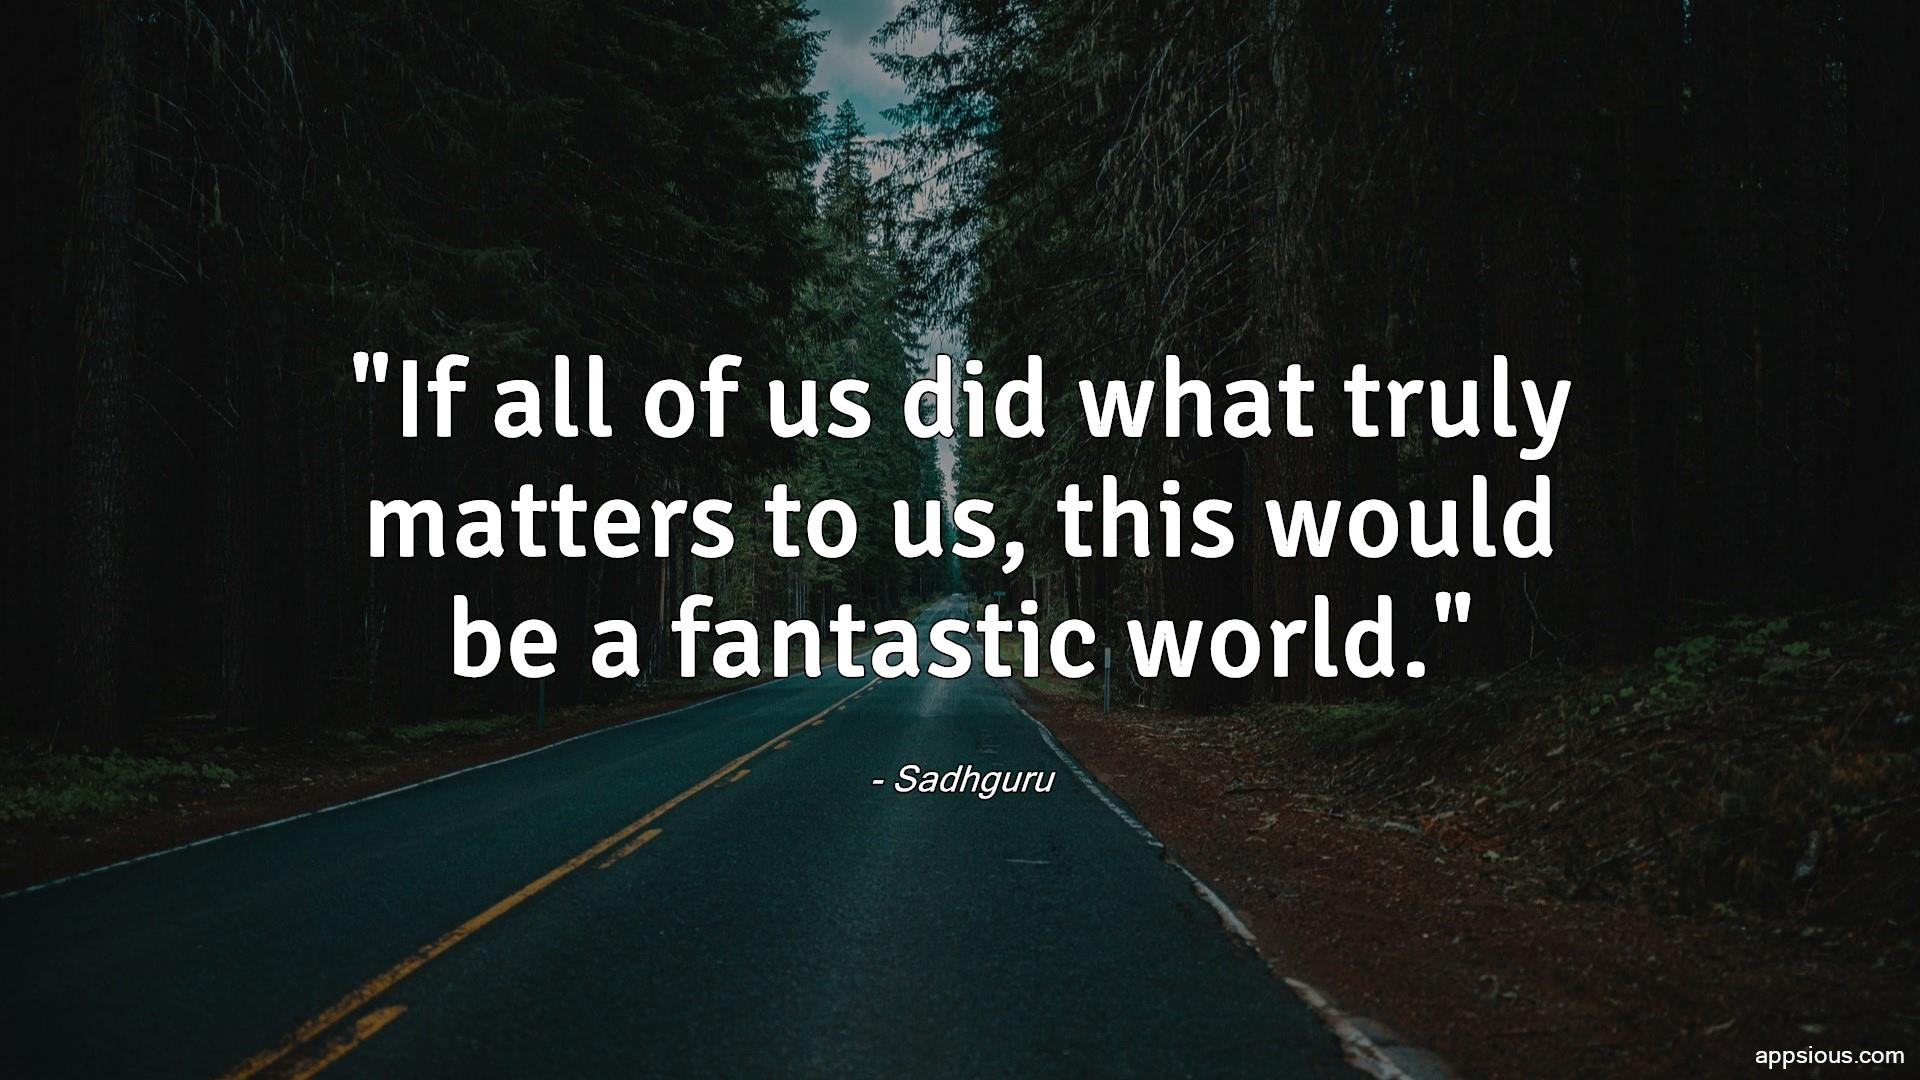 If all of us did what truly matters to us, this would be a fantastic world.